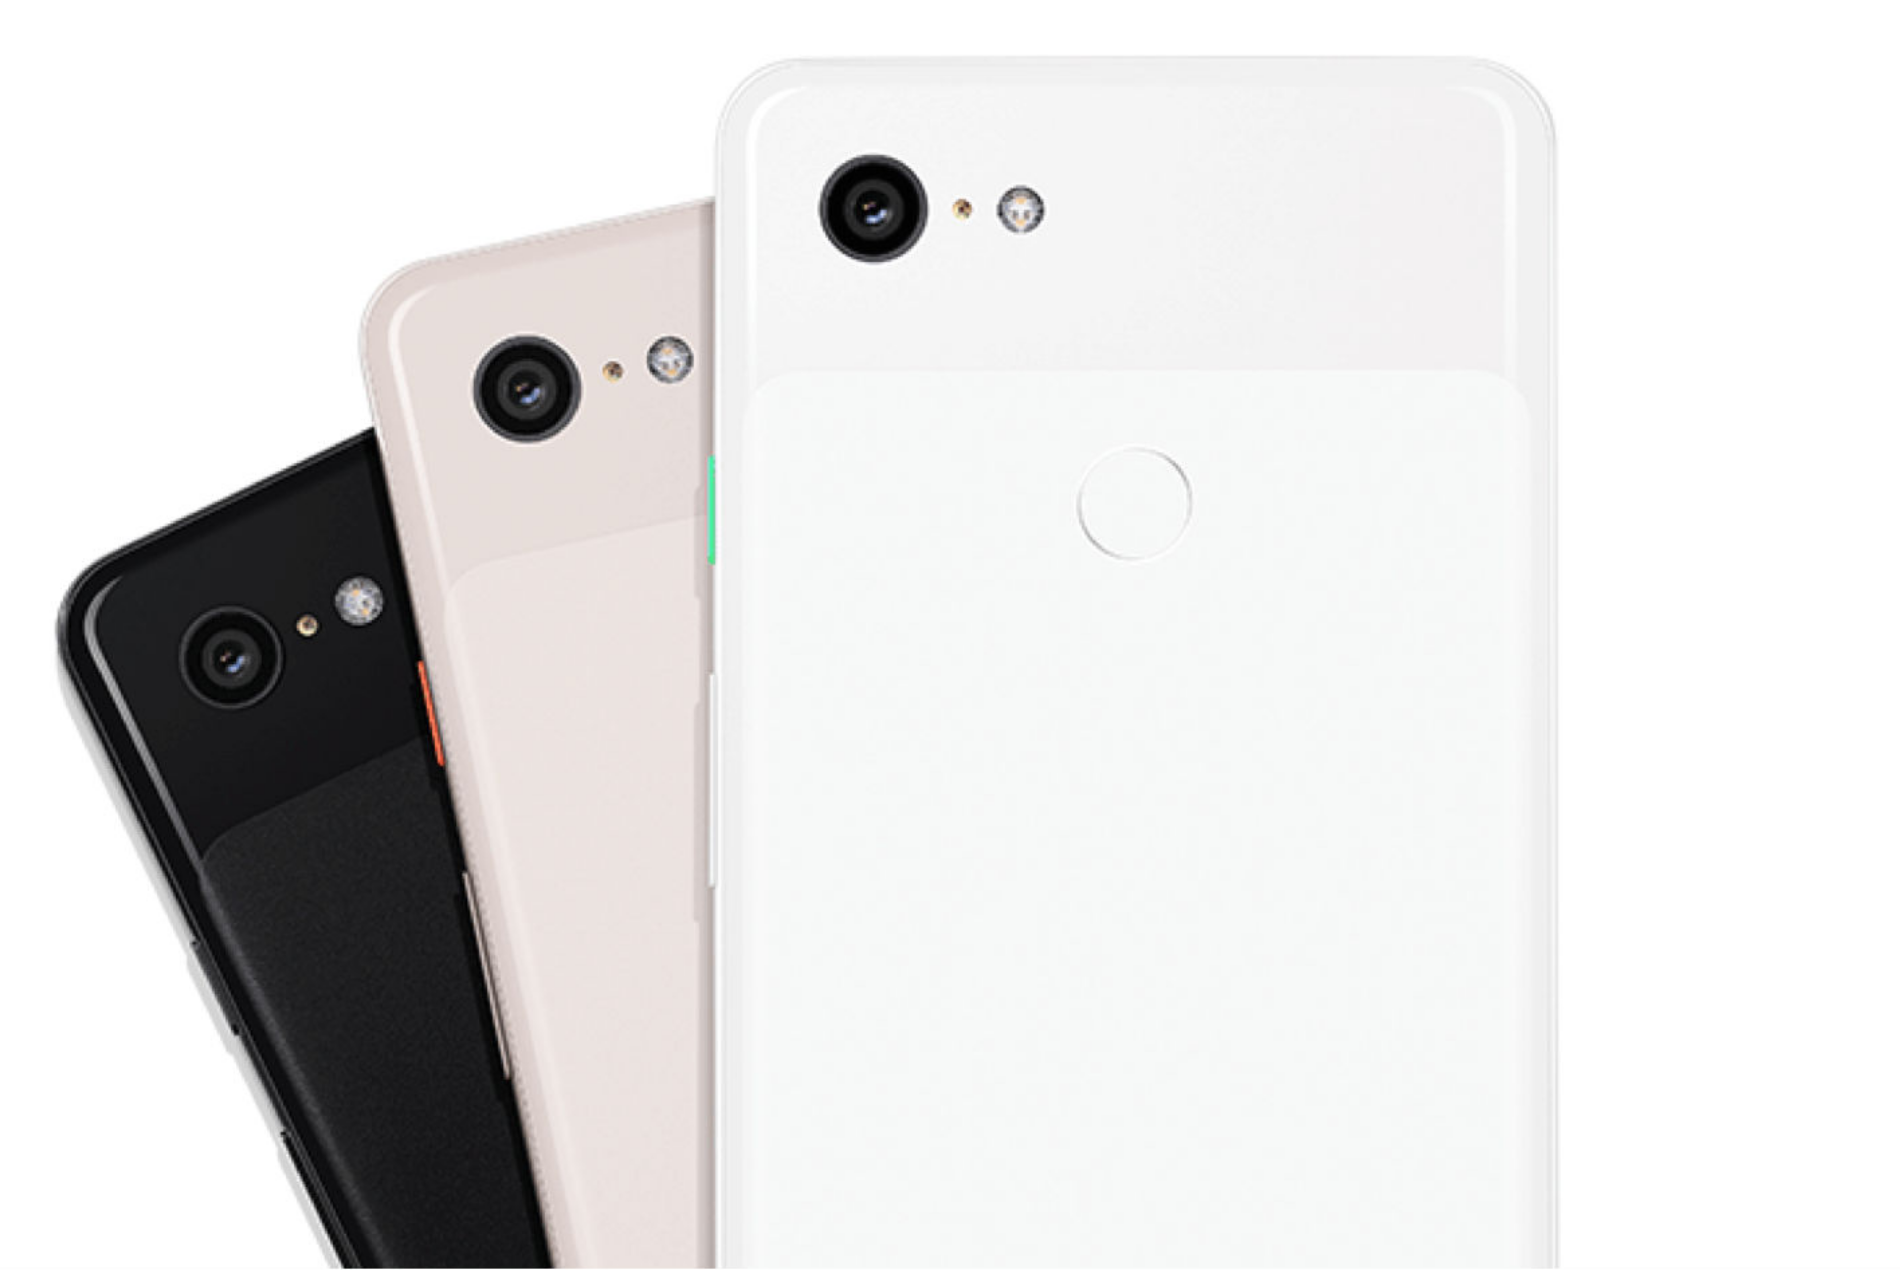 Here is the Google Pixel 3